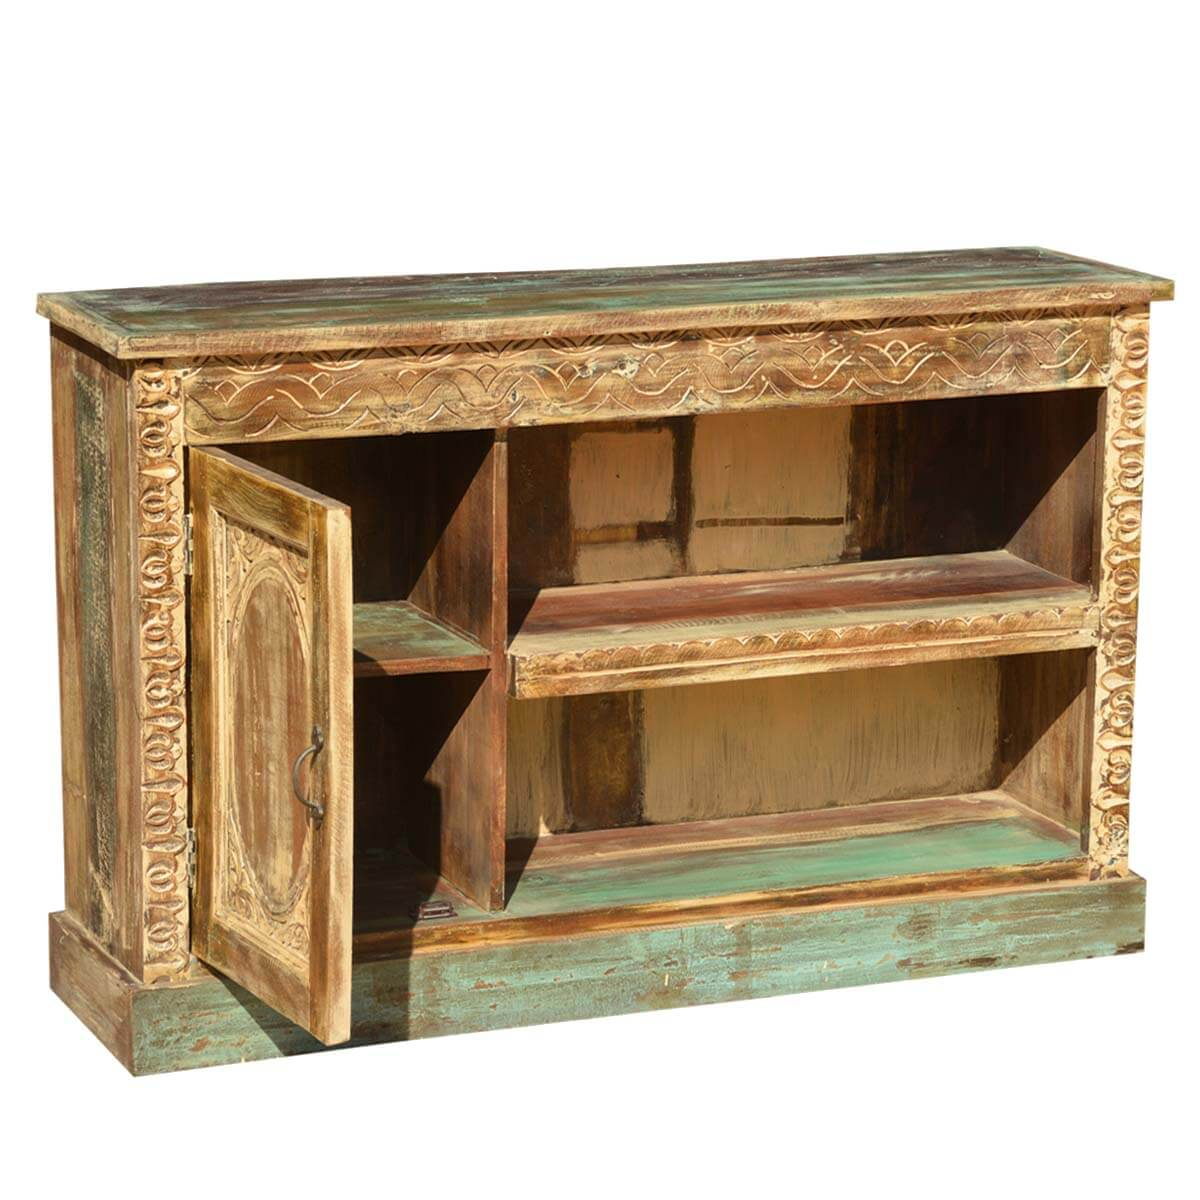 Elizabethan rustic reclaimed wood tv media console furniture